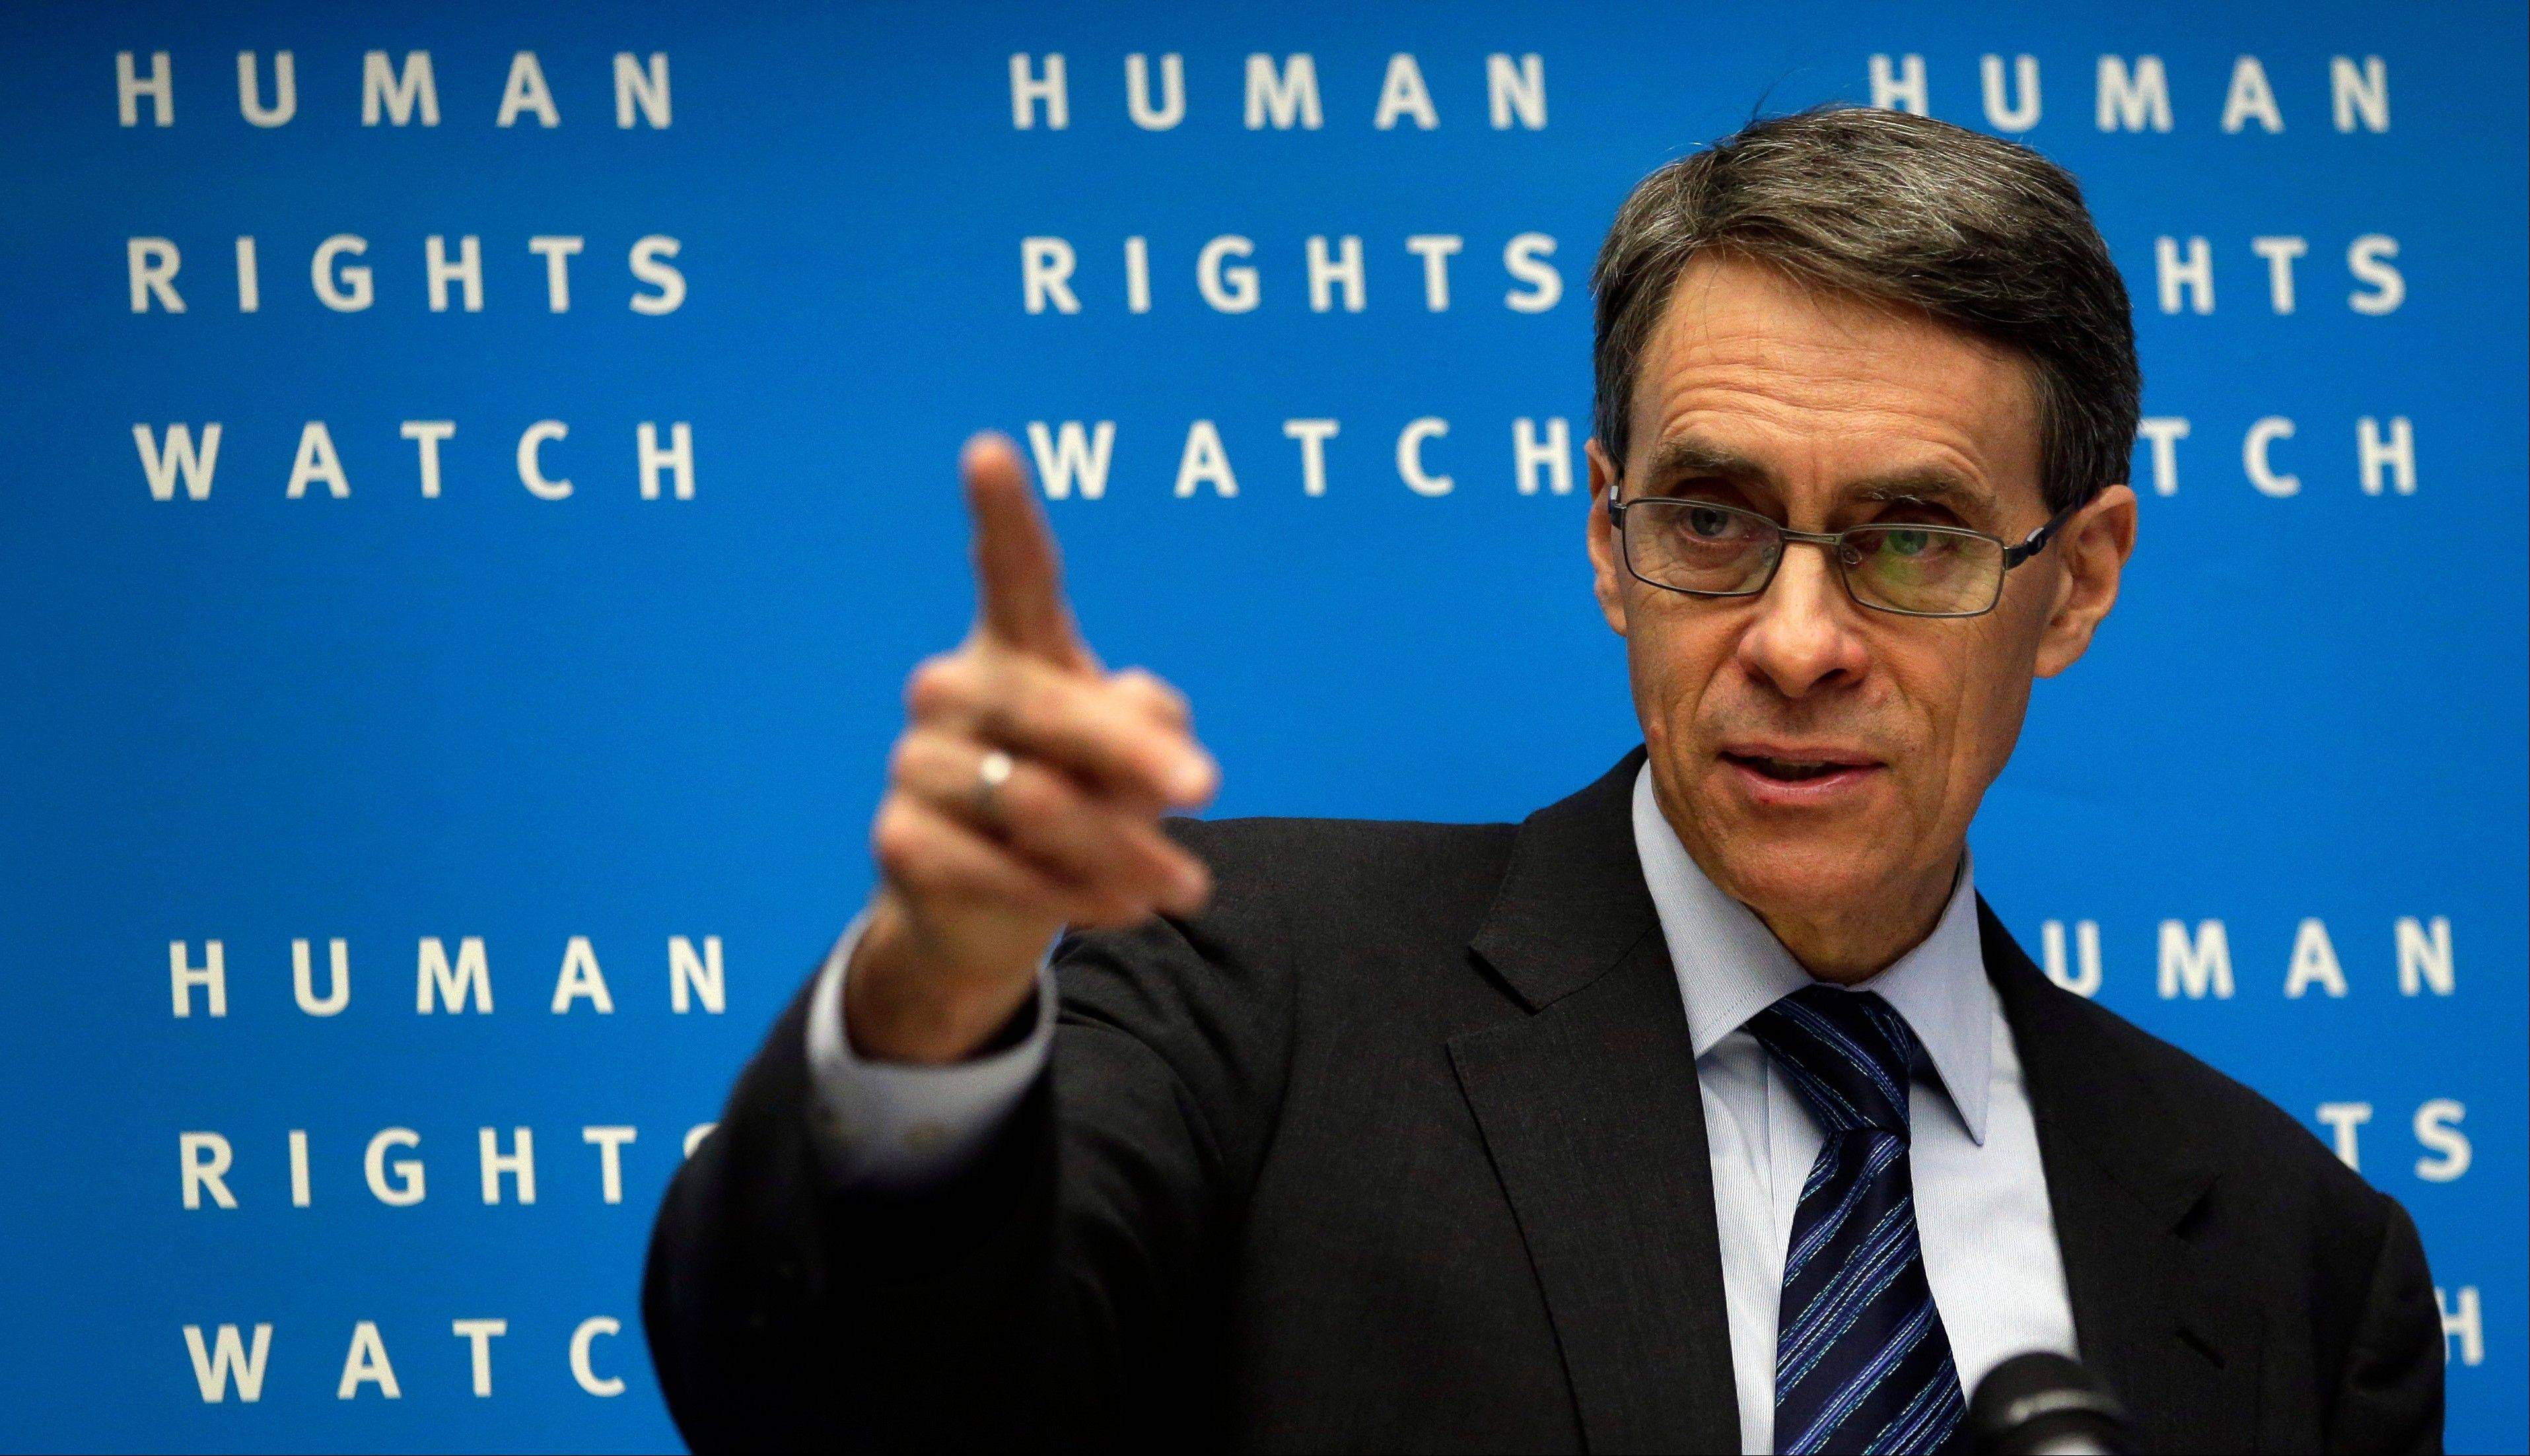 Kenneth Roth, Executive Director of Human Rights Watch, speaks during the annual press conference of the nongovernmental organization in Berlin, Germany, Tuesday, Jan. 21, 2014.